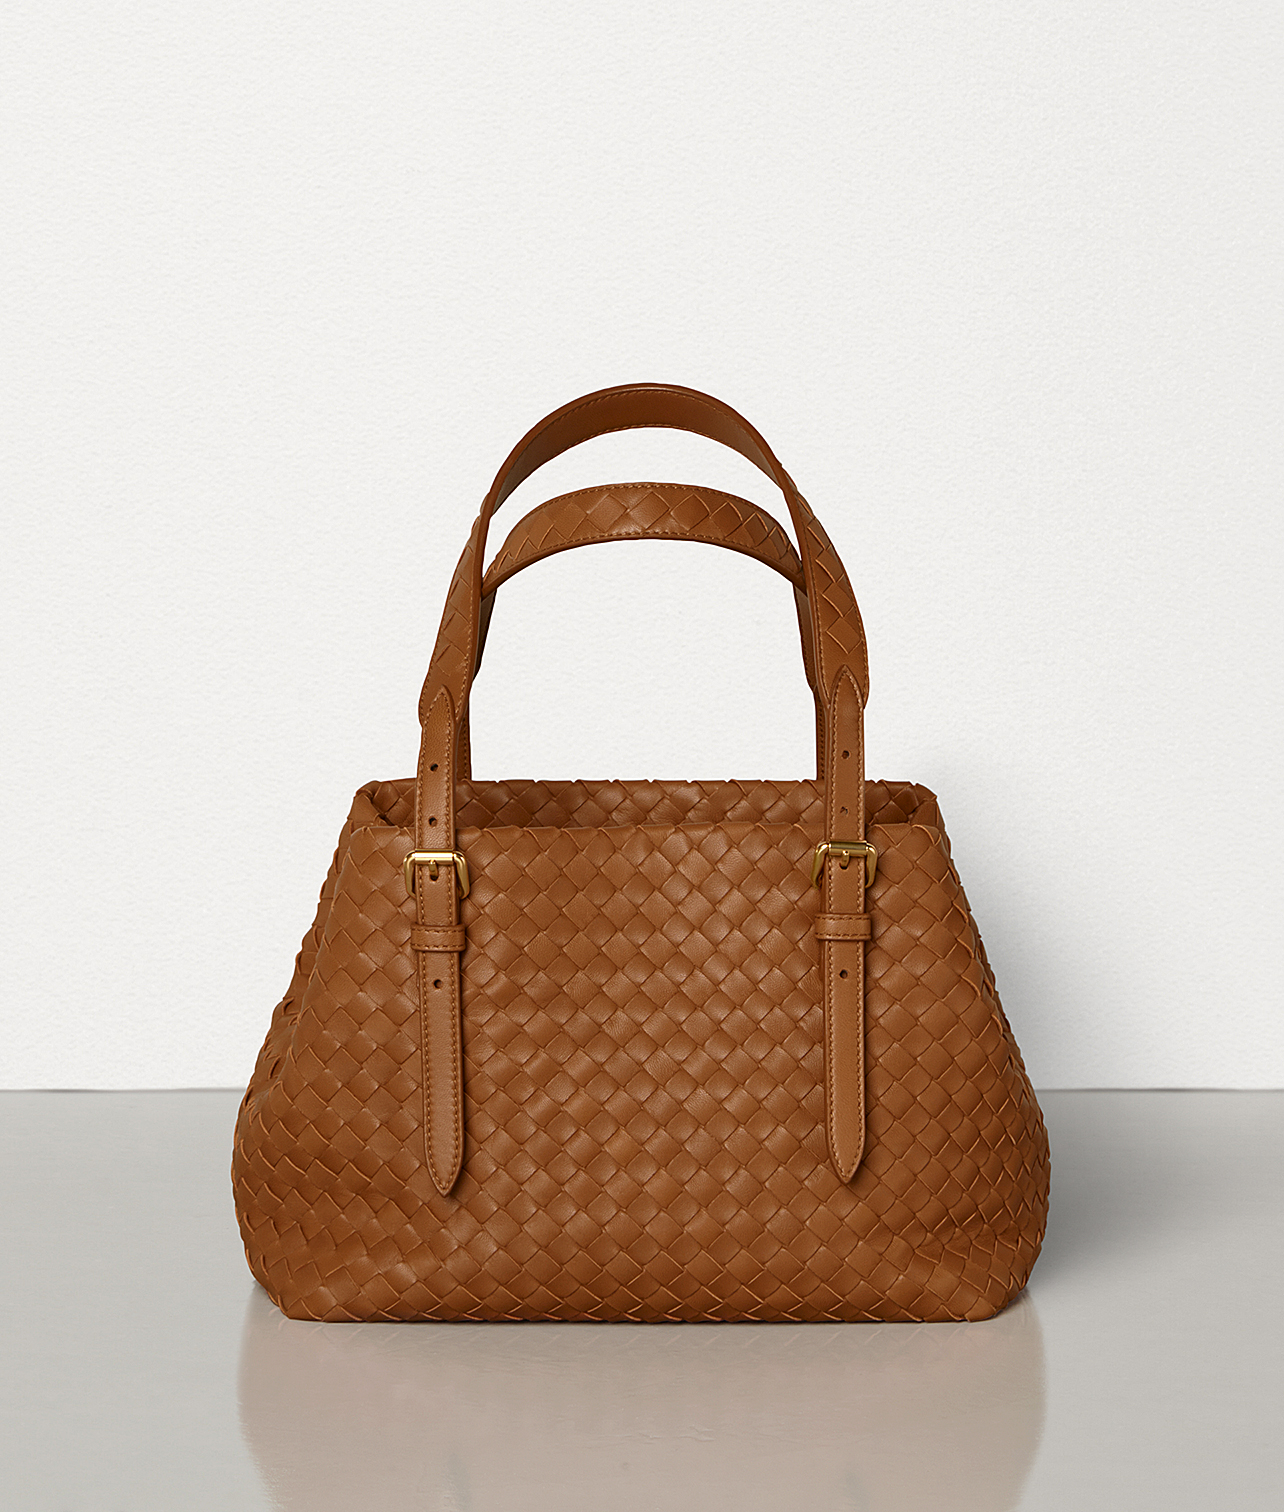 BOTTEGA VENETA | Mini Cesta Bag In Intrecciato Nappa - Bottega Veneta | Goxip